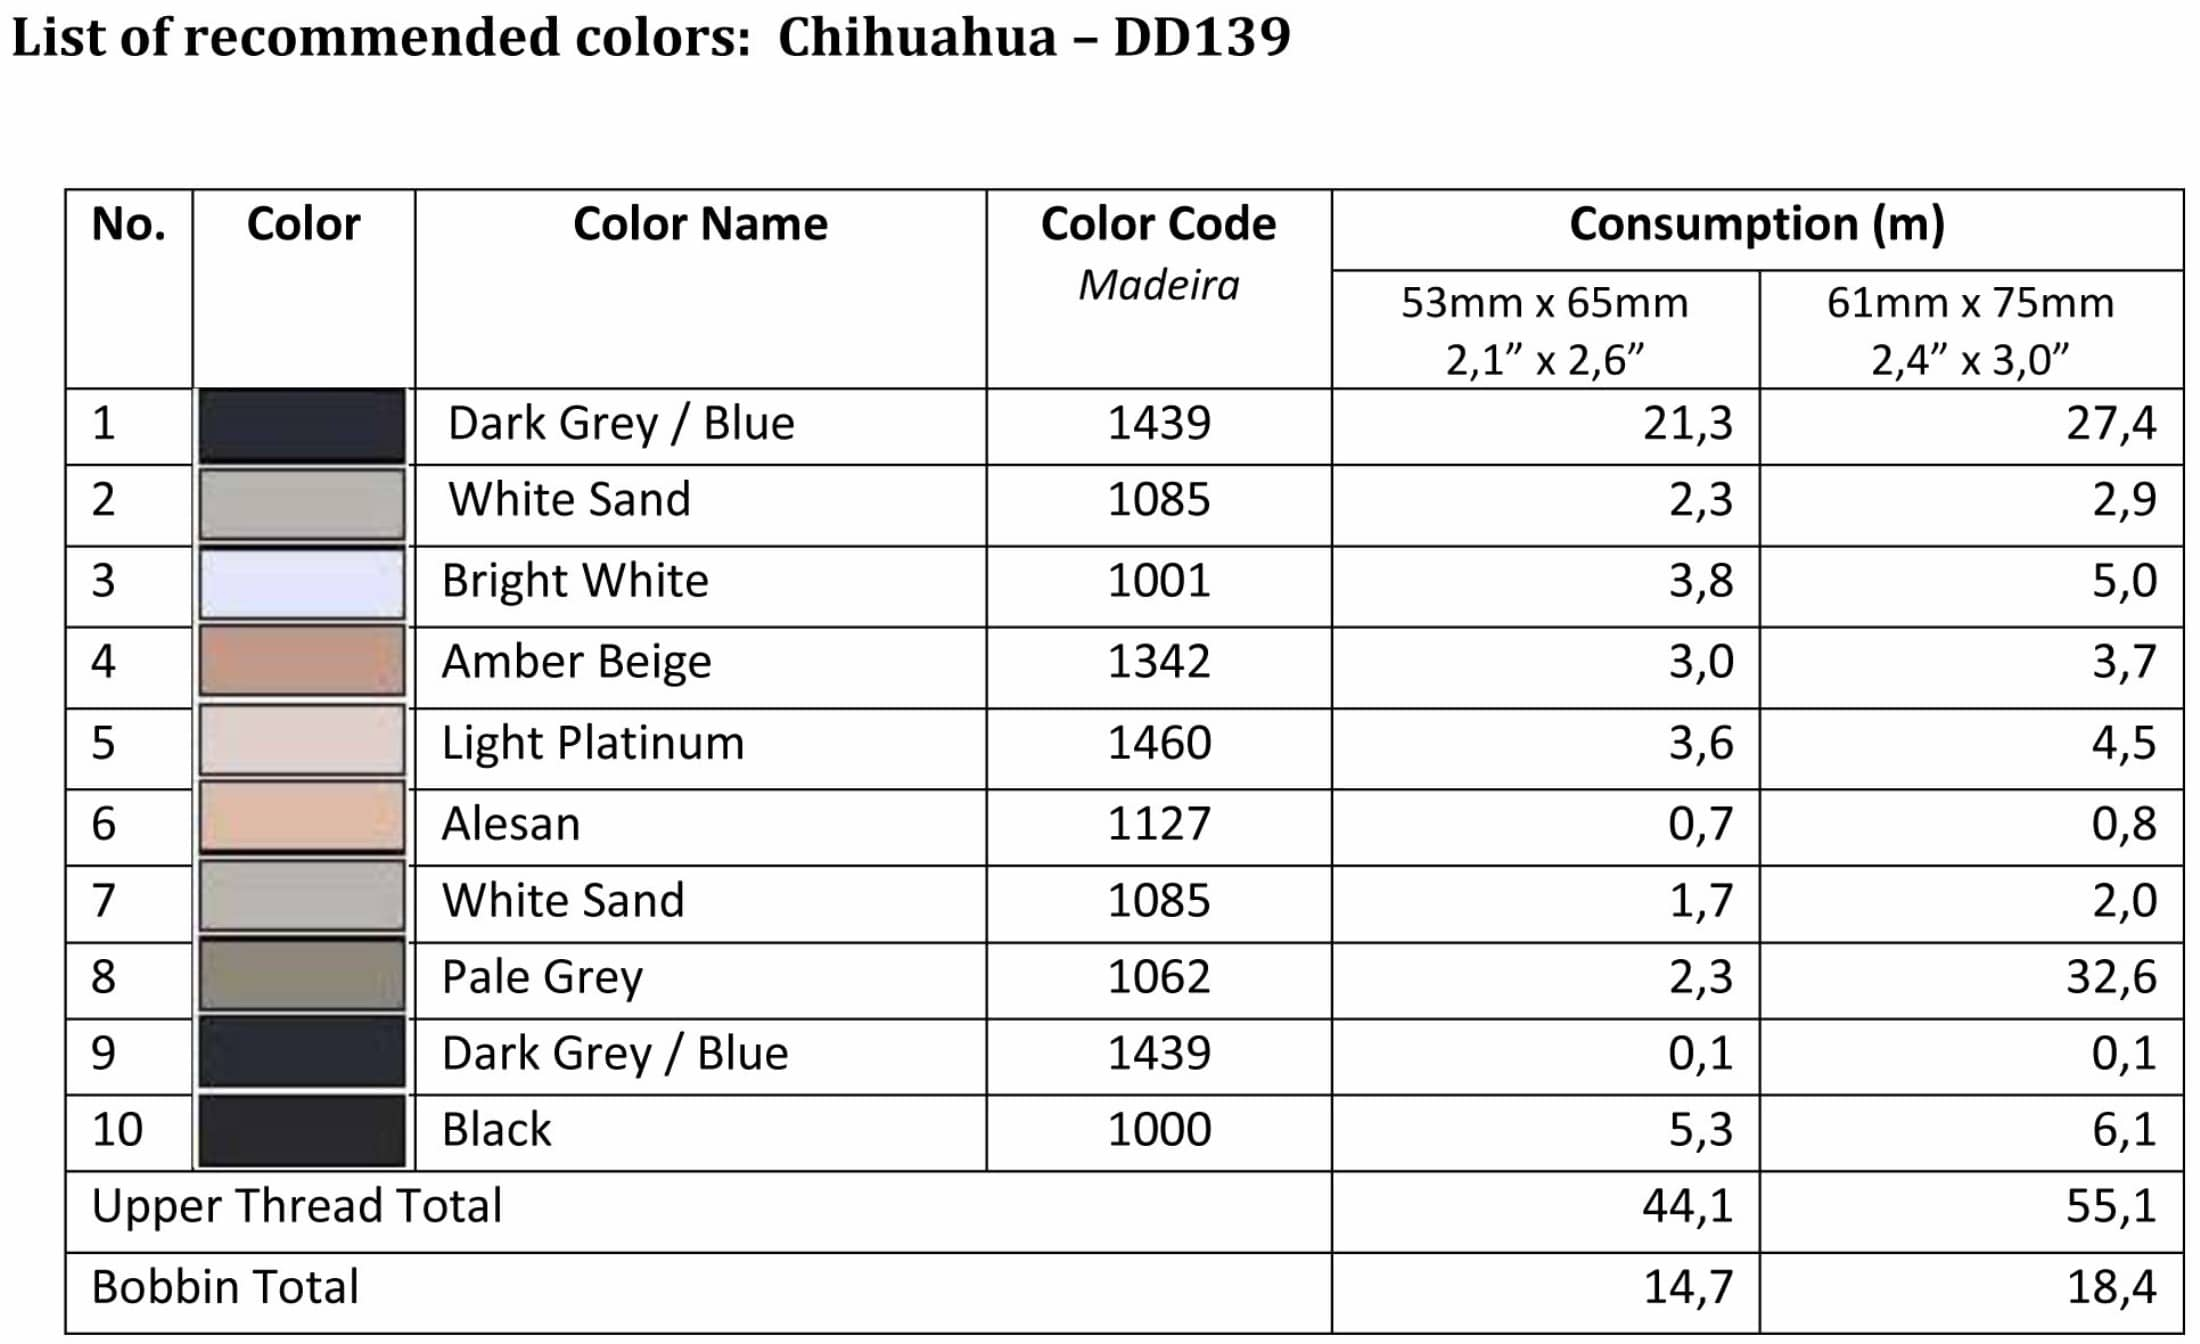 List of recommended colors - DD139